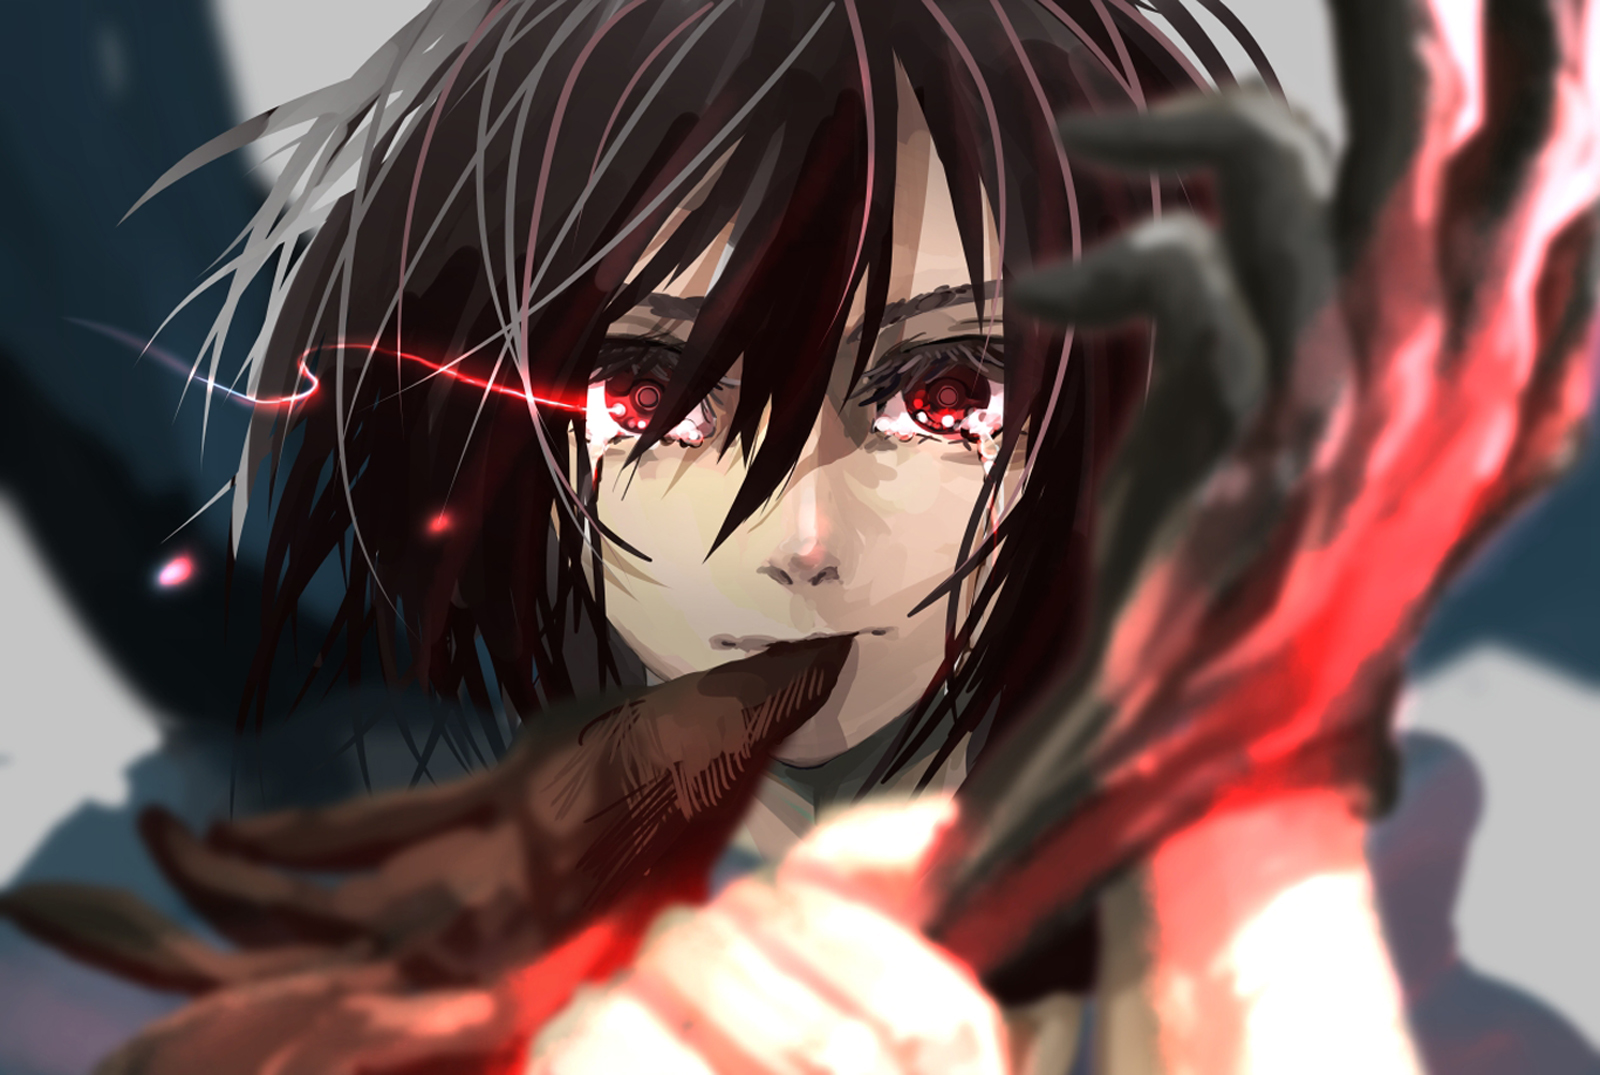 Hd Wallpaper Shingeki No Kyojin Mikasa Ackerman 2132